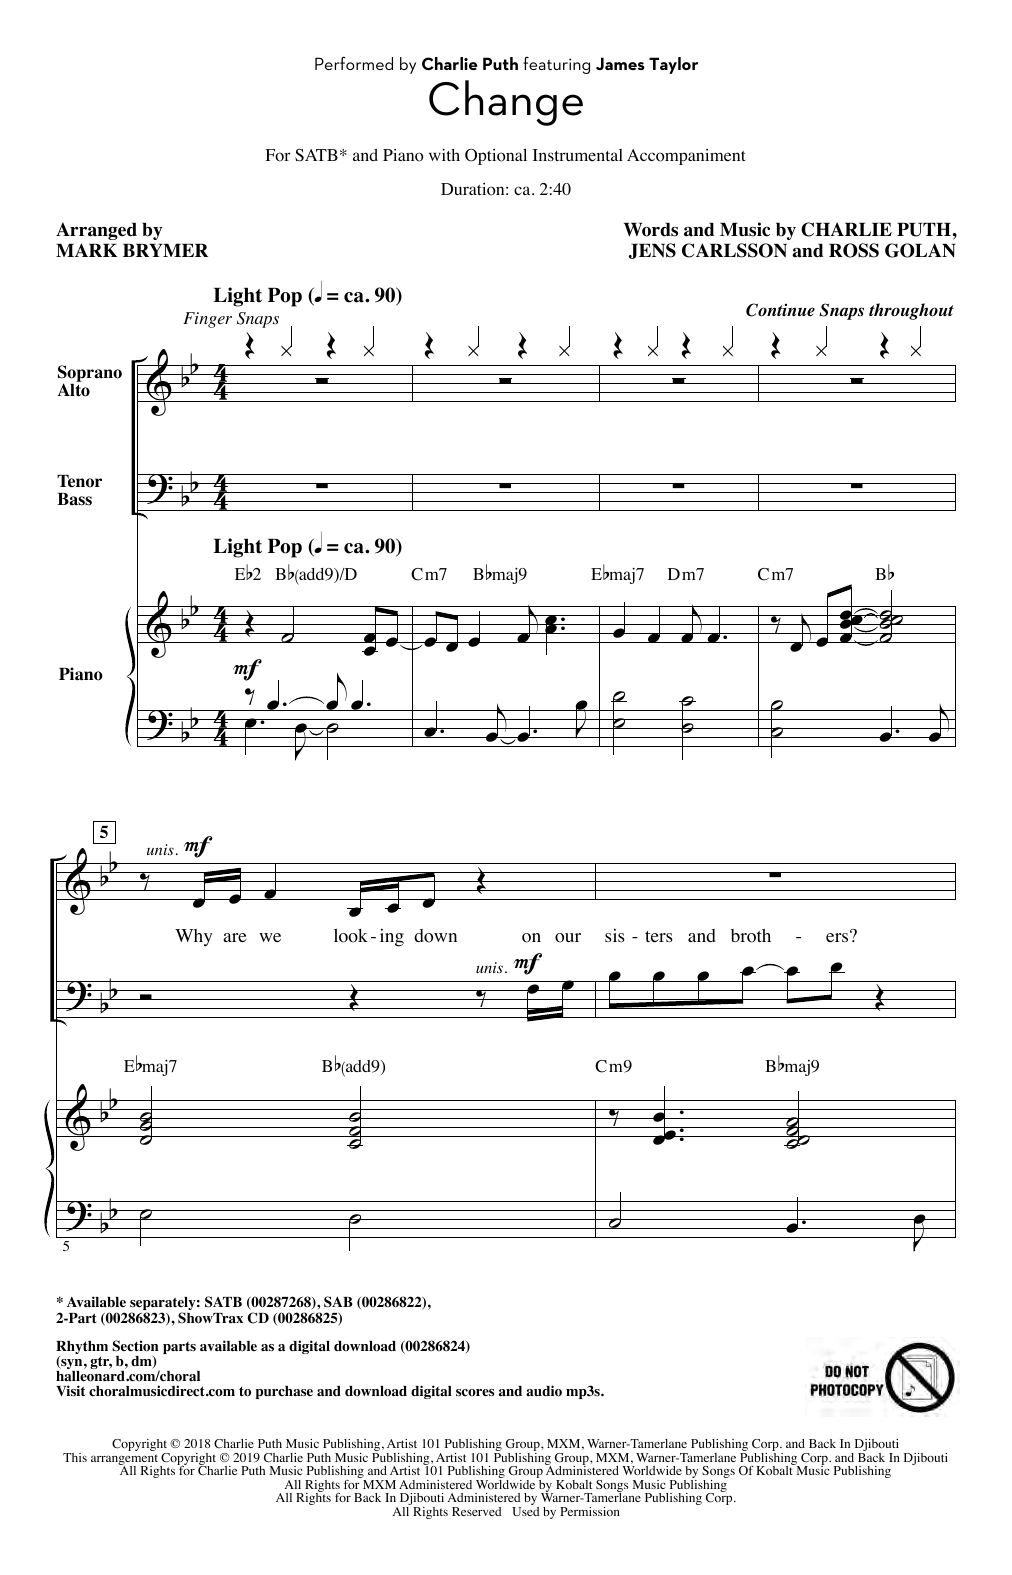 Charlie Puth Change (feat. James Taylor) (arr. Mark Brymer) sheet music notes and chords. Download Printable PDF.